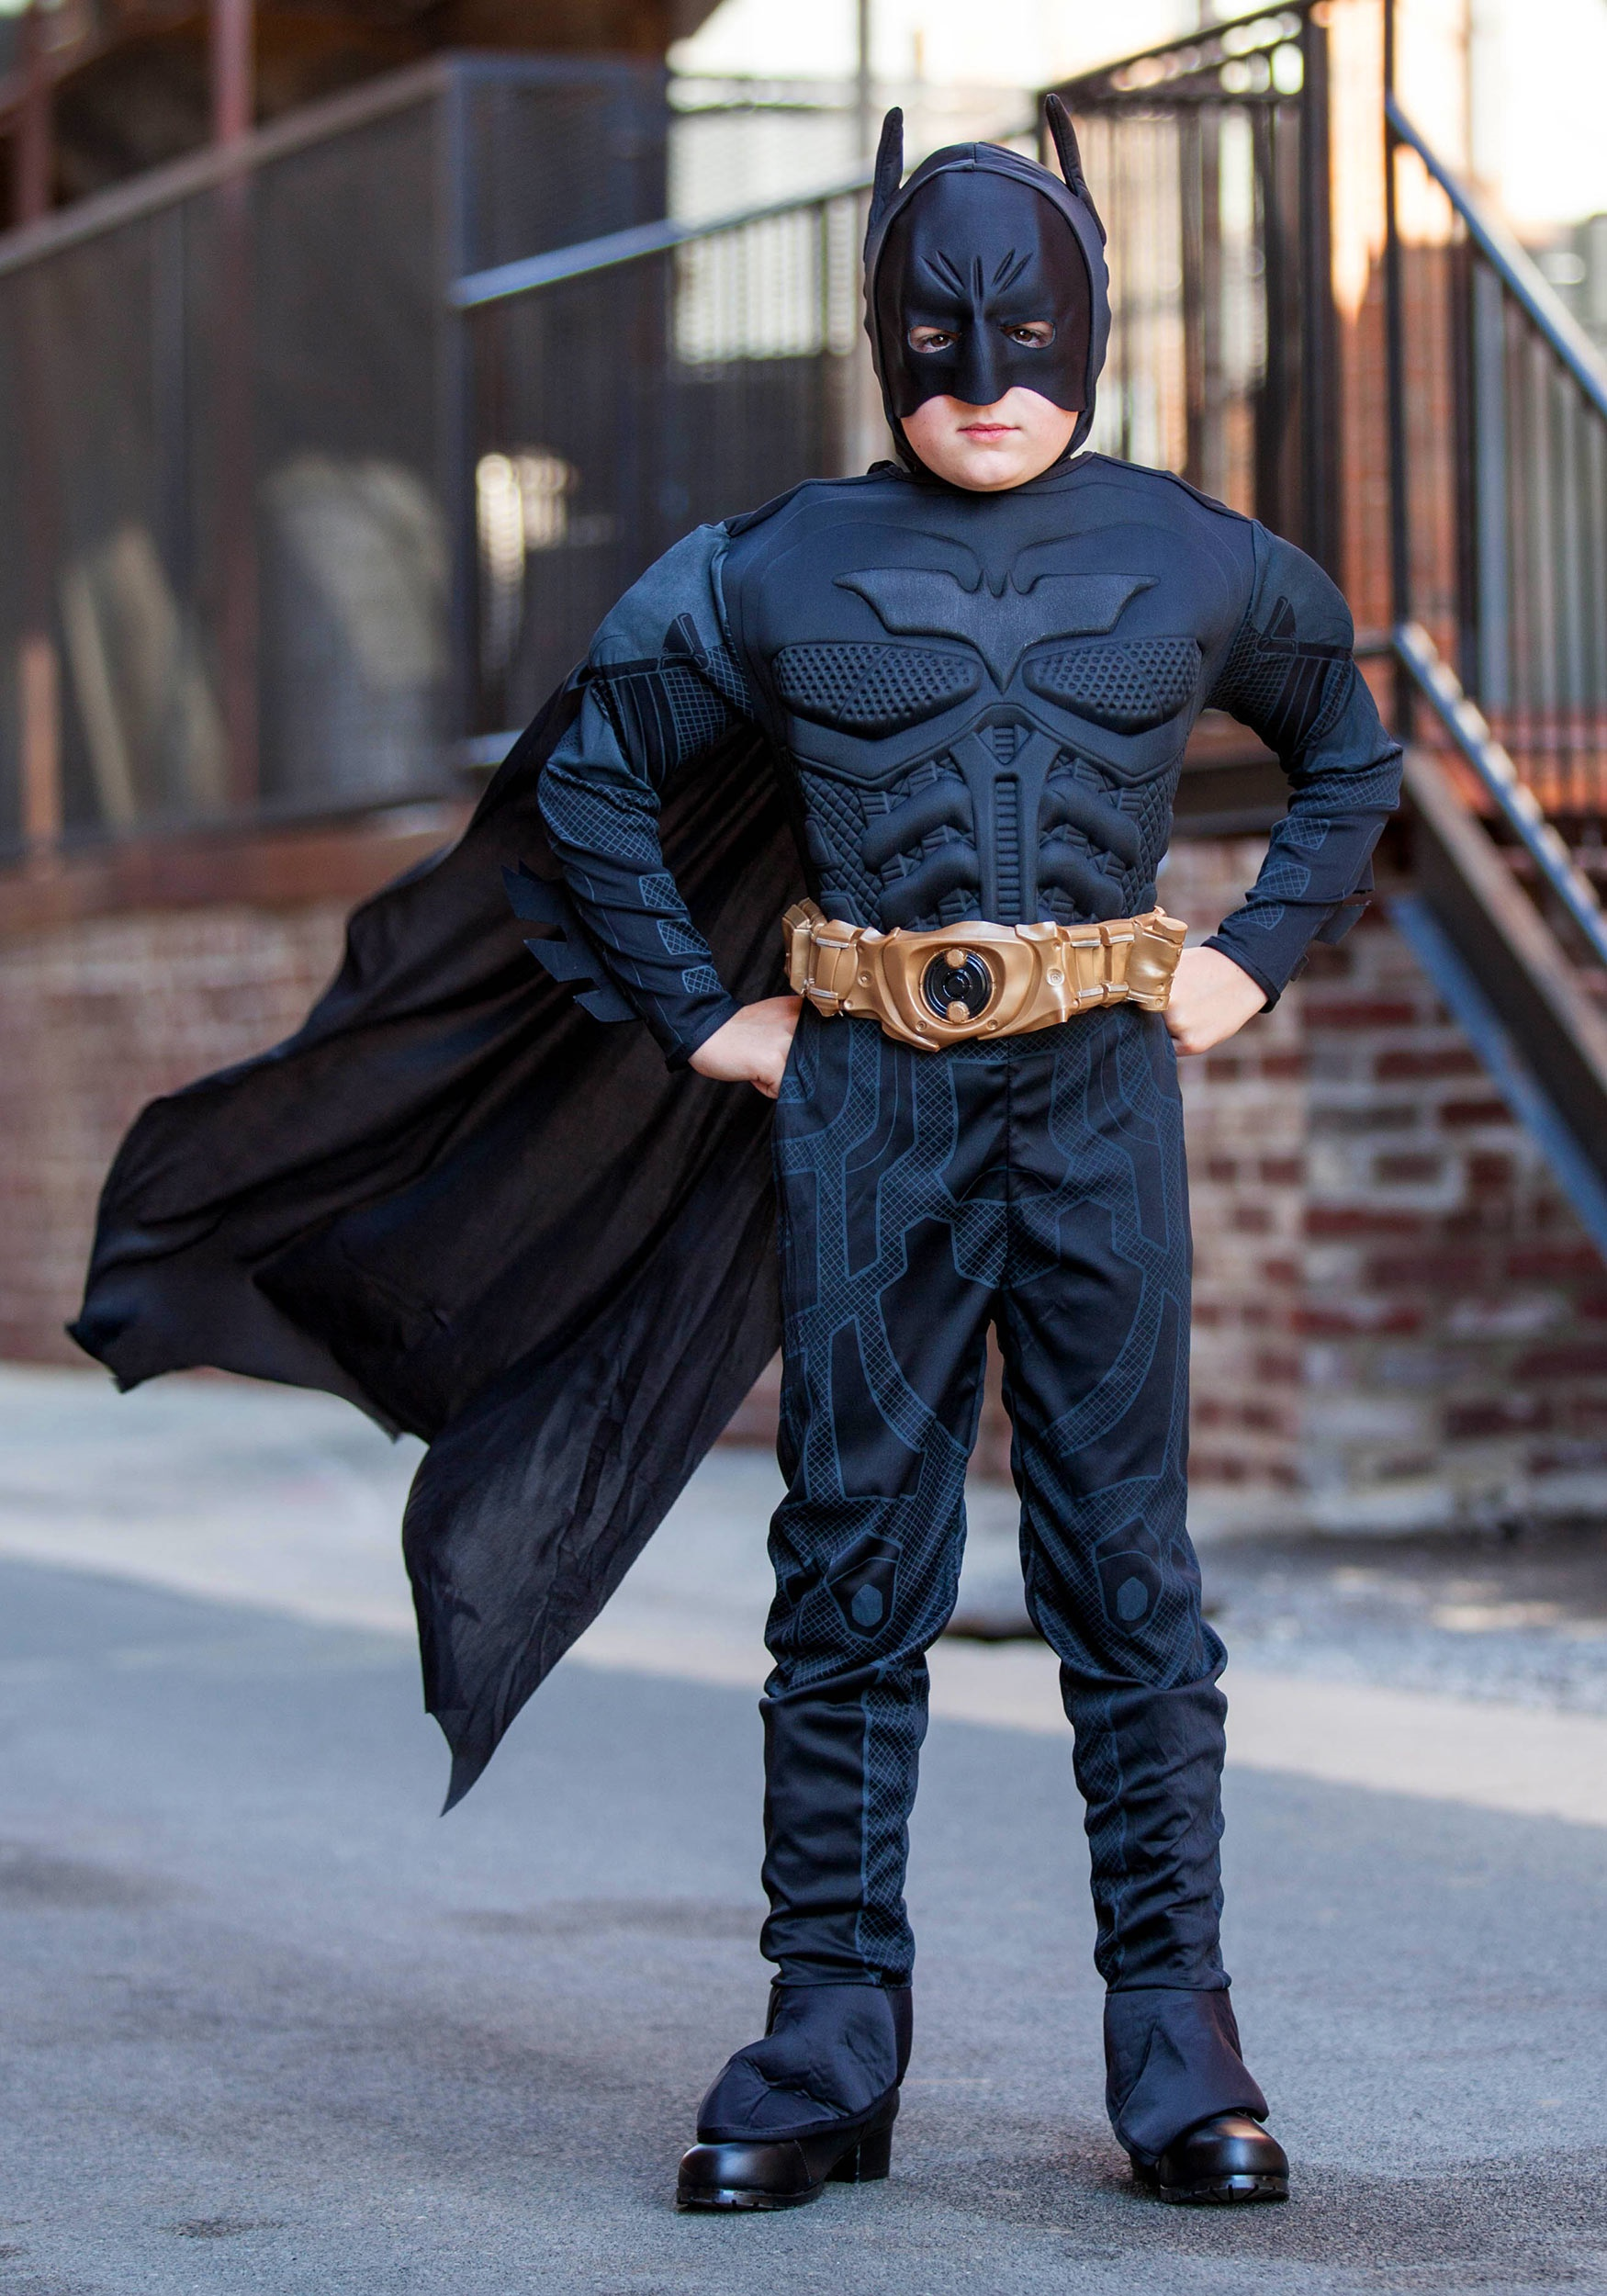 batman costumes & suits for halloween - halloweencostumes